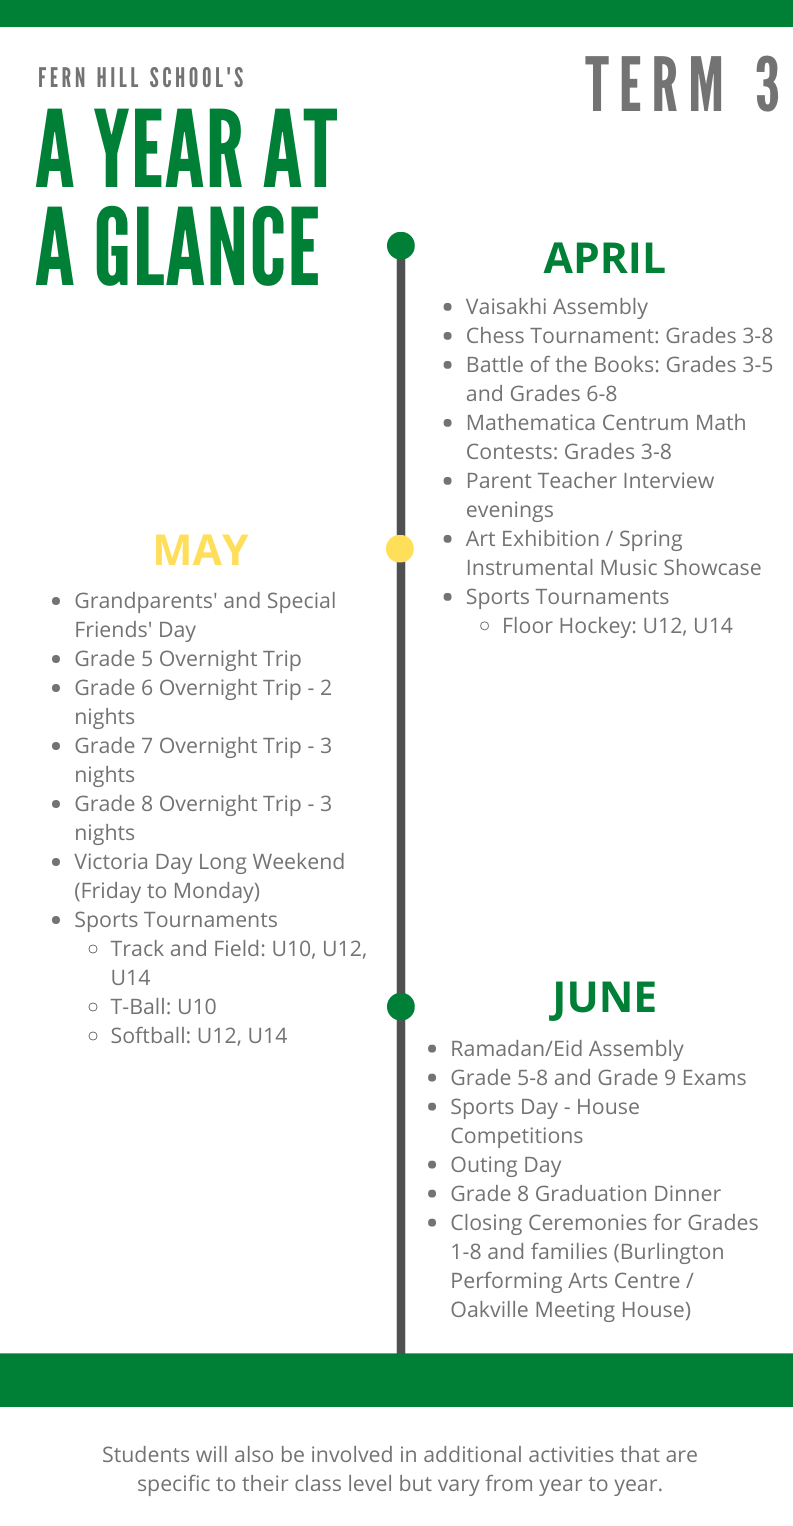 Year At A Glance - Term 3